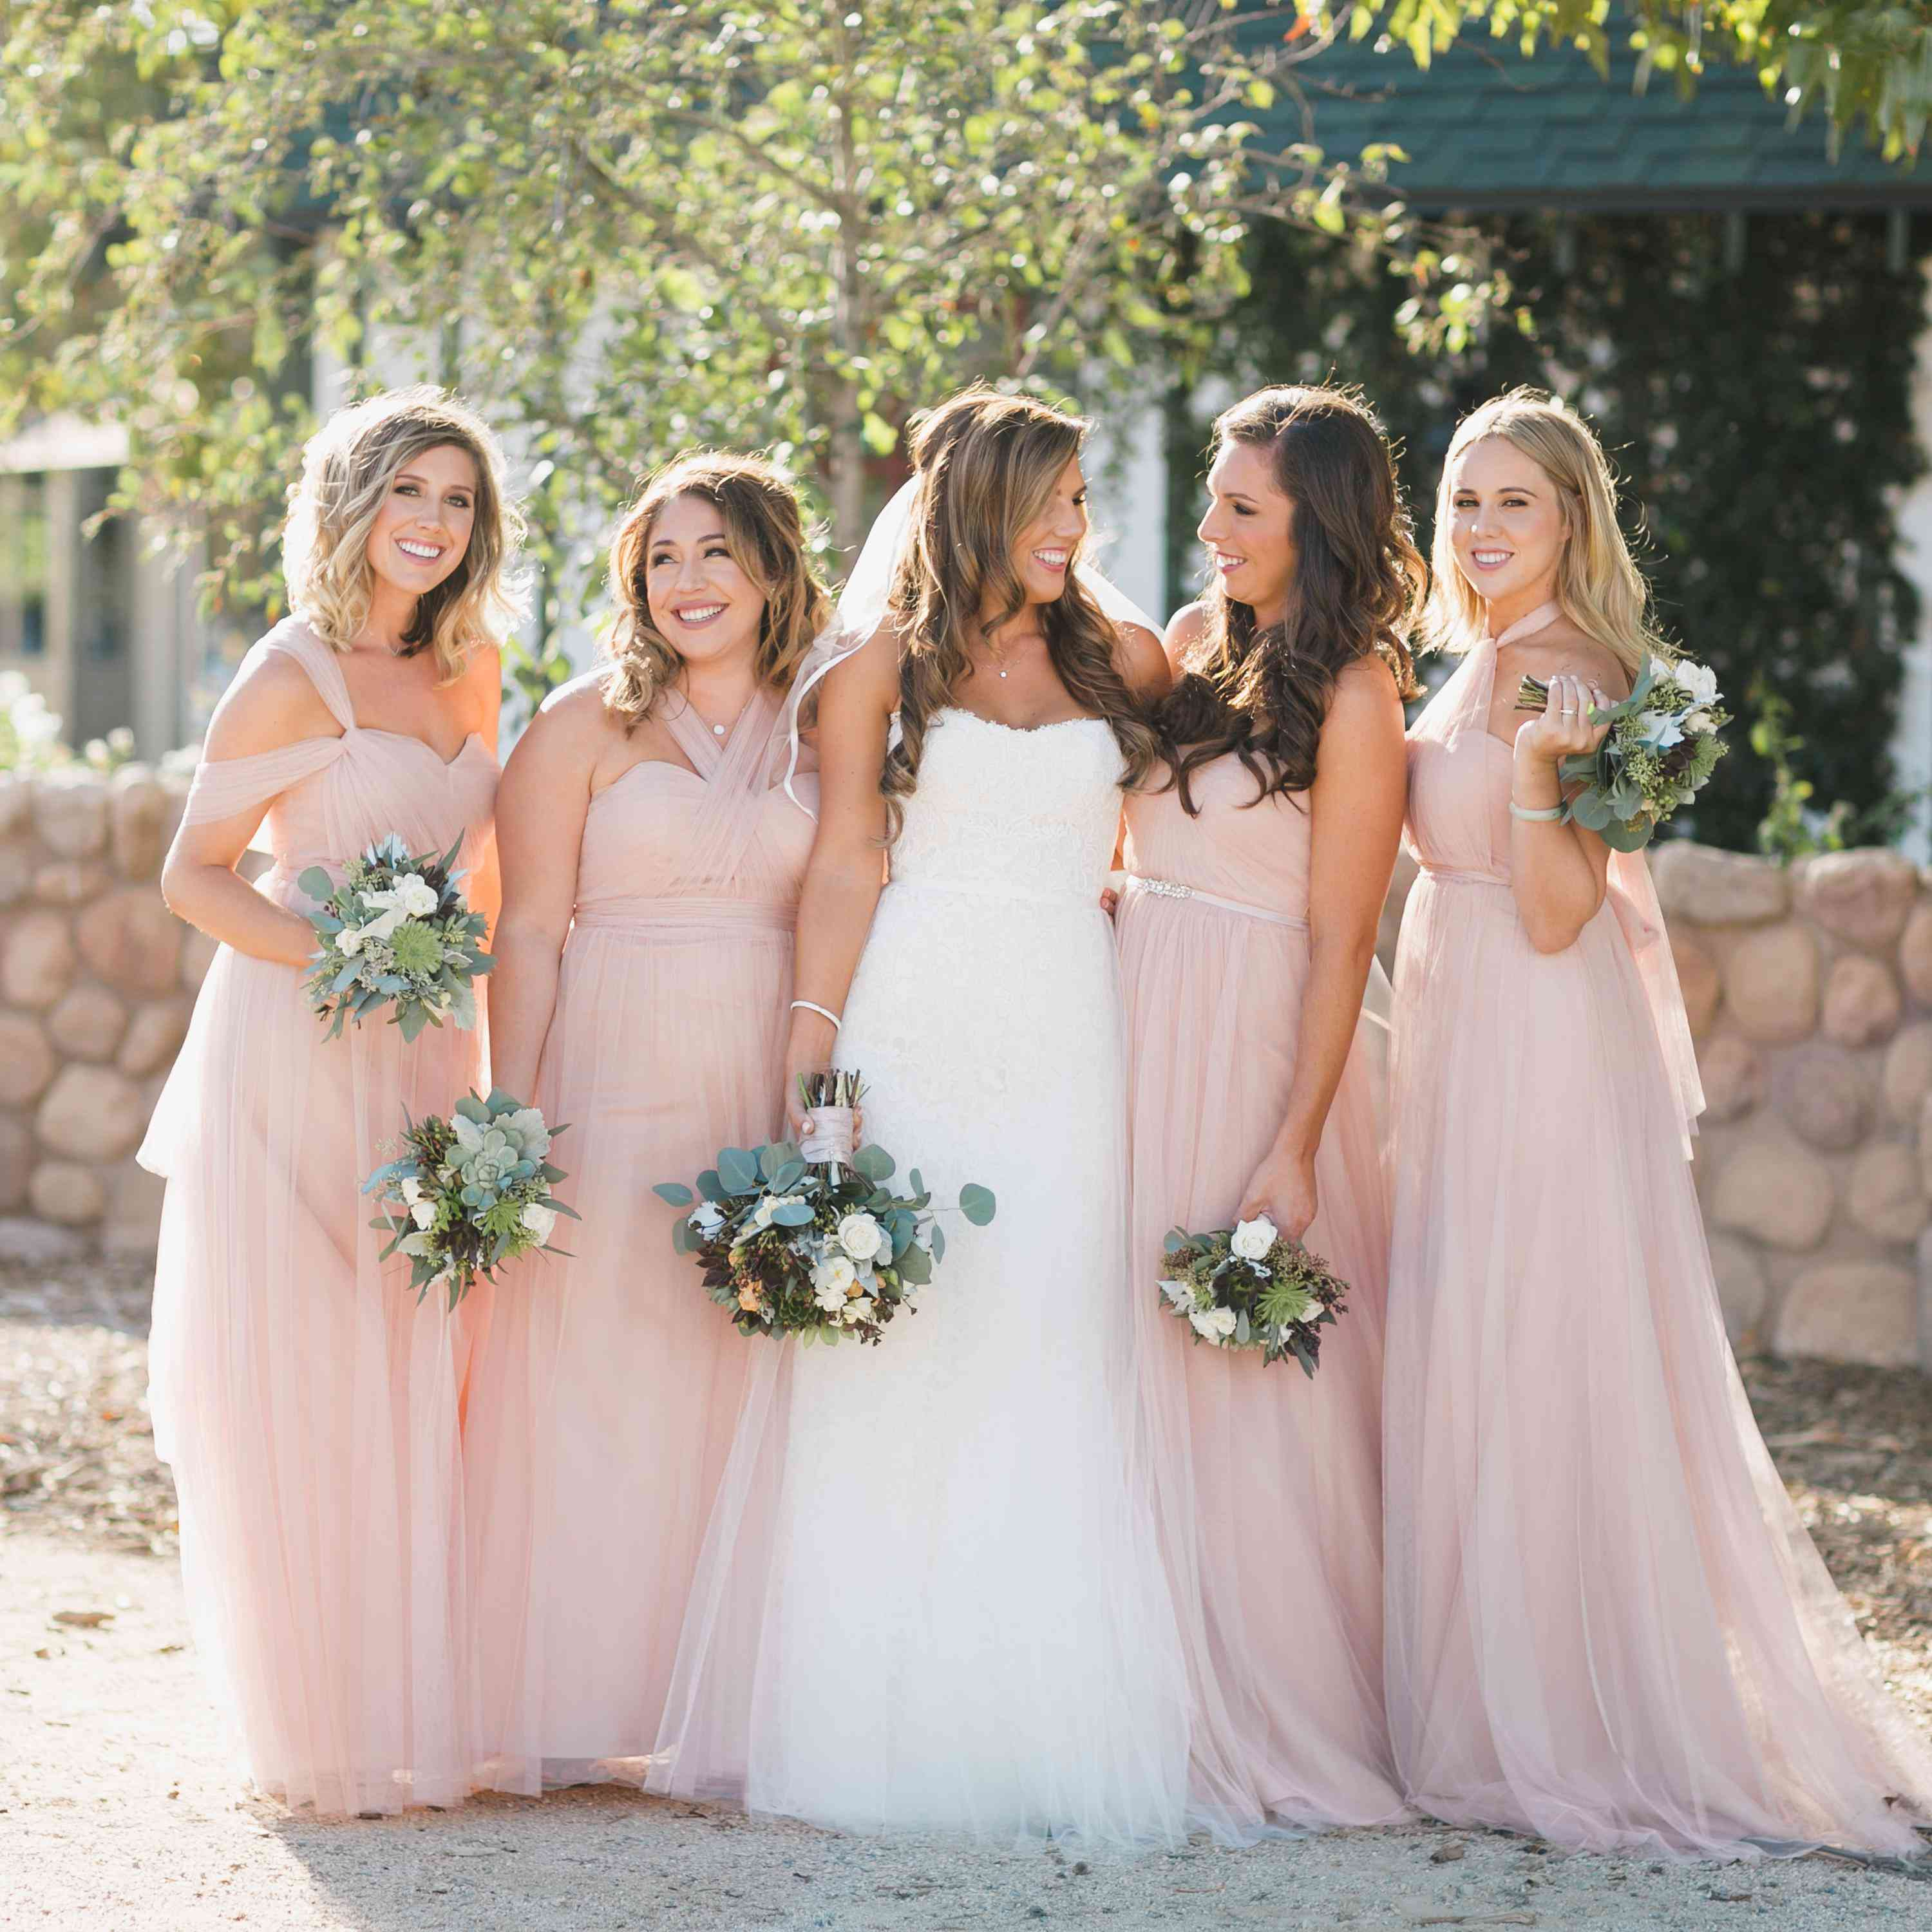 5 rules for being the best maid of honor ever